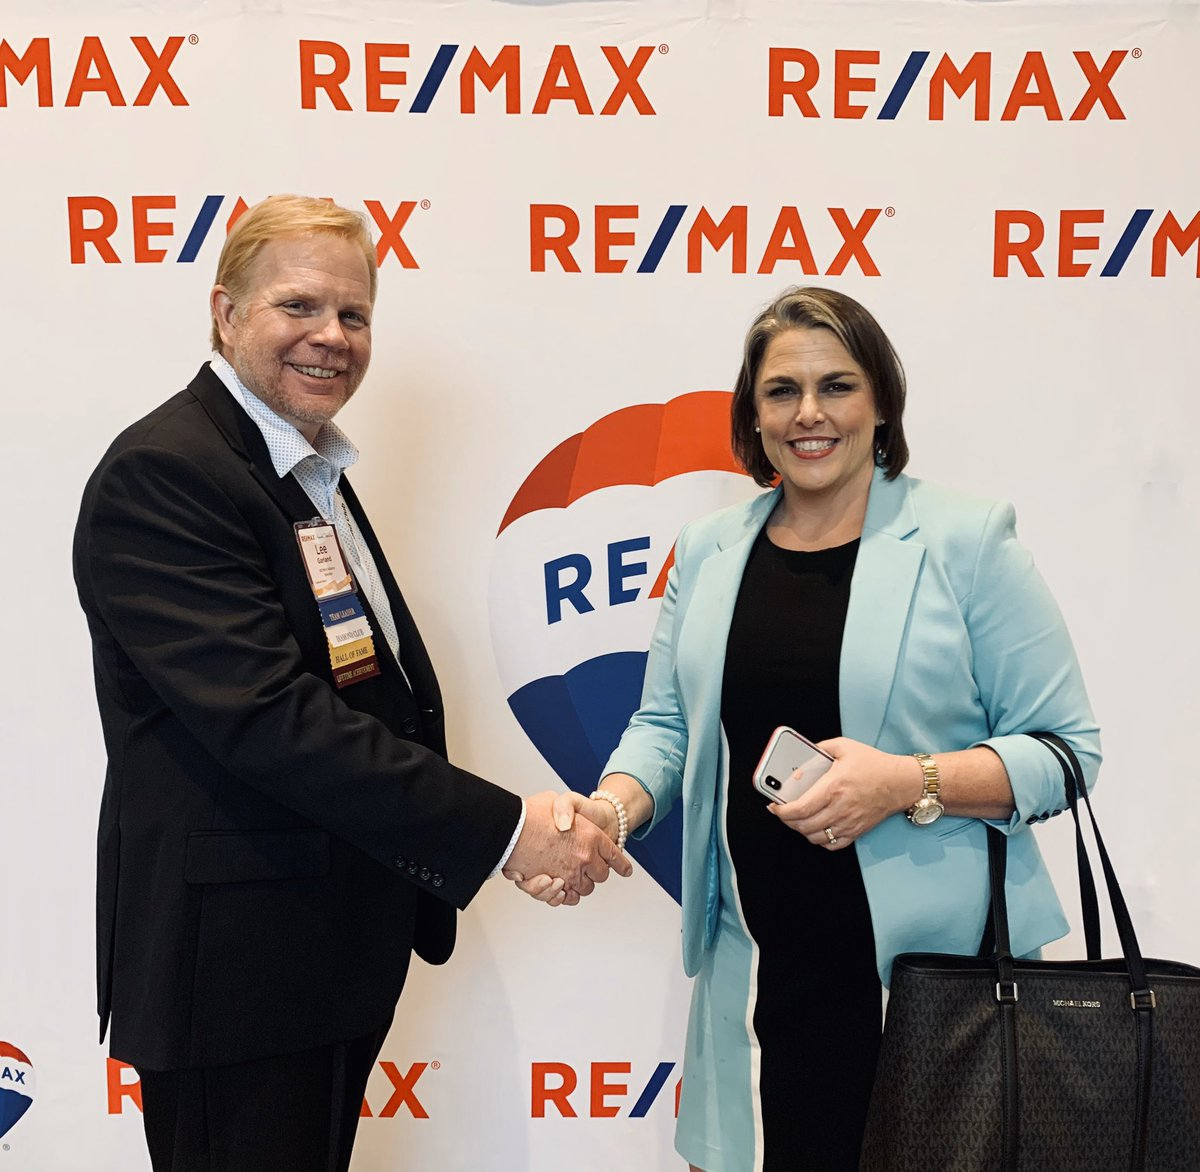 I've always chosen to be part of a #1 Team.  I'm excited to announce I've joined Lee Garland - Re/Max Alliance - 601.983.1130 agent: Jill W Gordon 601-622-7067   Let's go sell and buy some houses and properties #Buyers #Sellers #MississippiRealEstate pic.twitter.com/CnNw8qzFSy